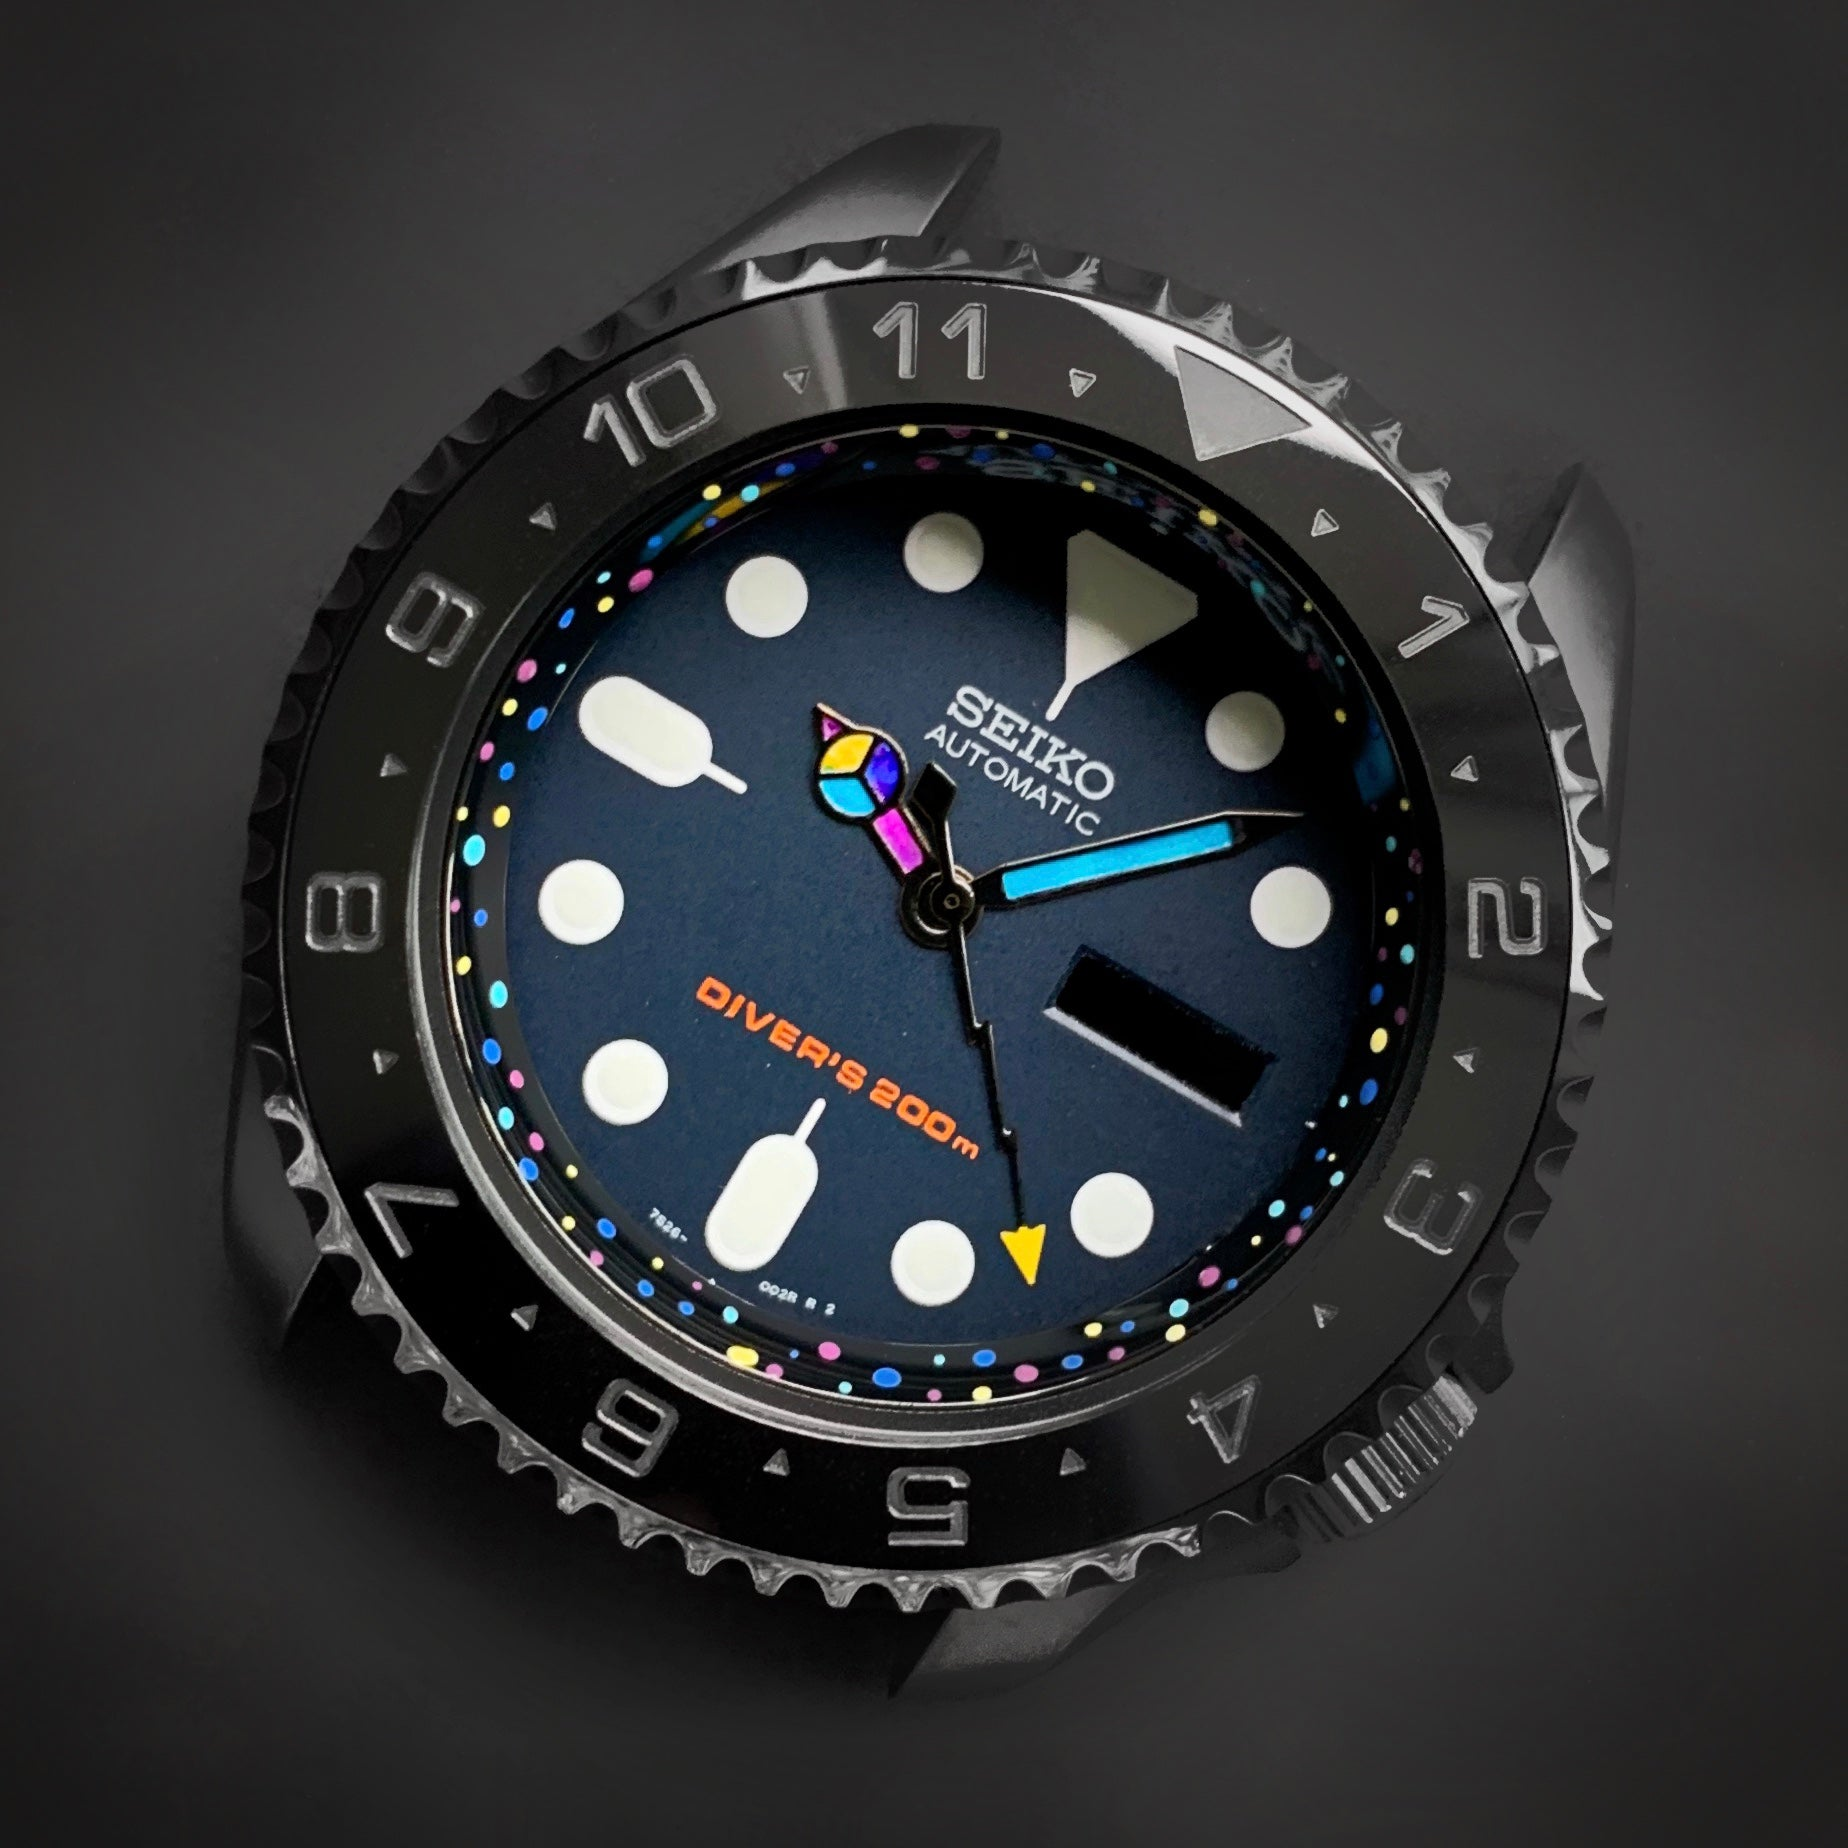 Ceramic Insert - 007 Dual Time Stealth